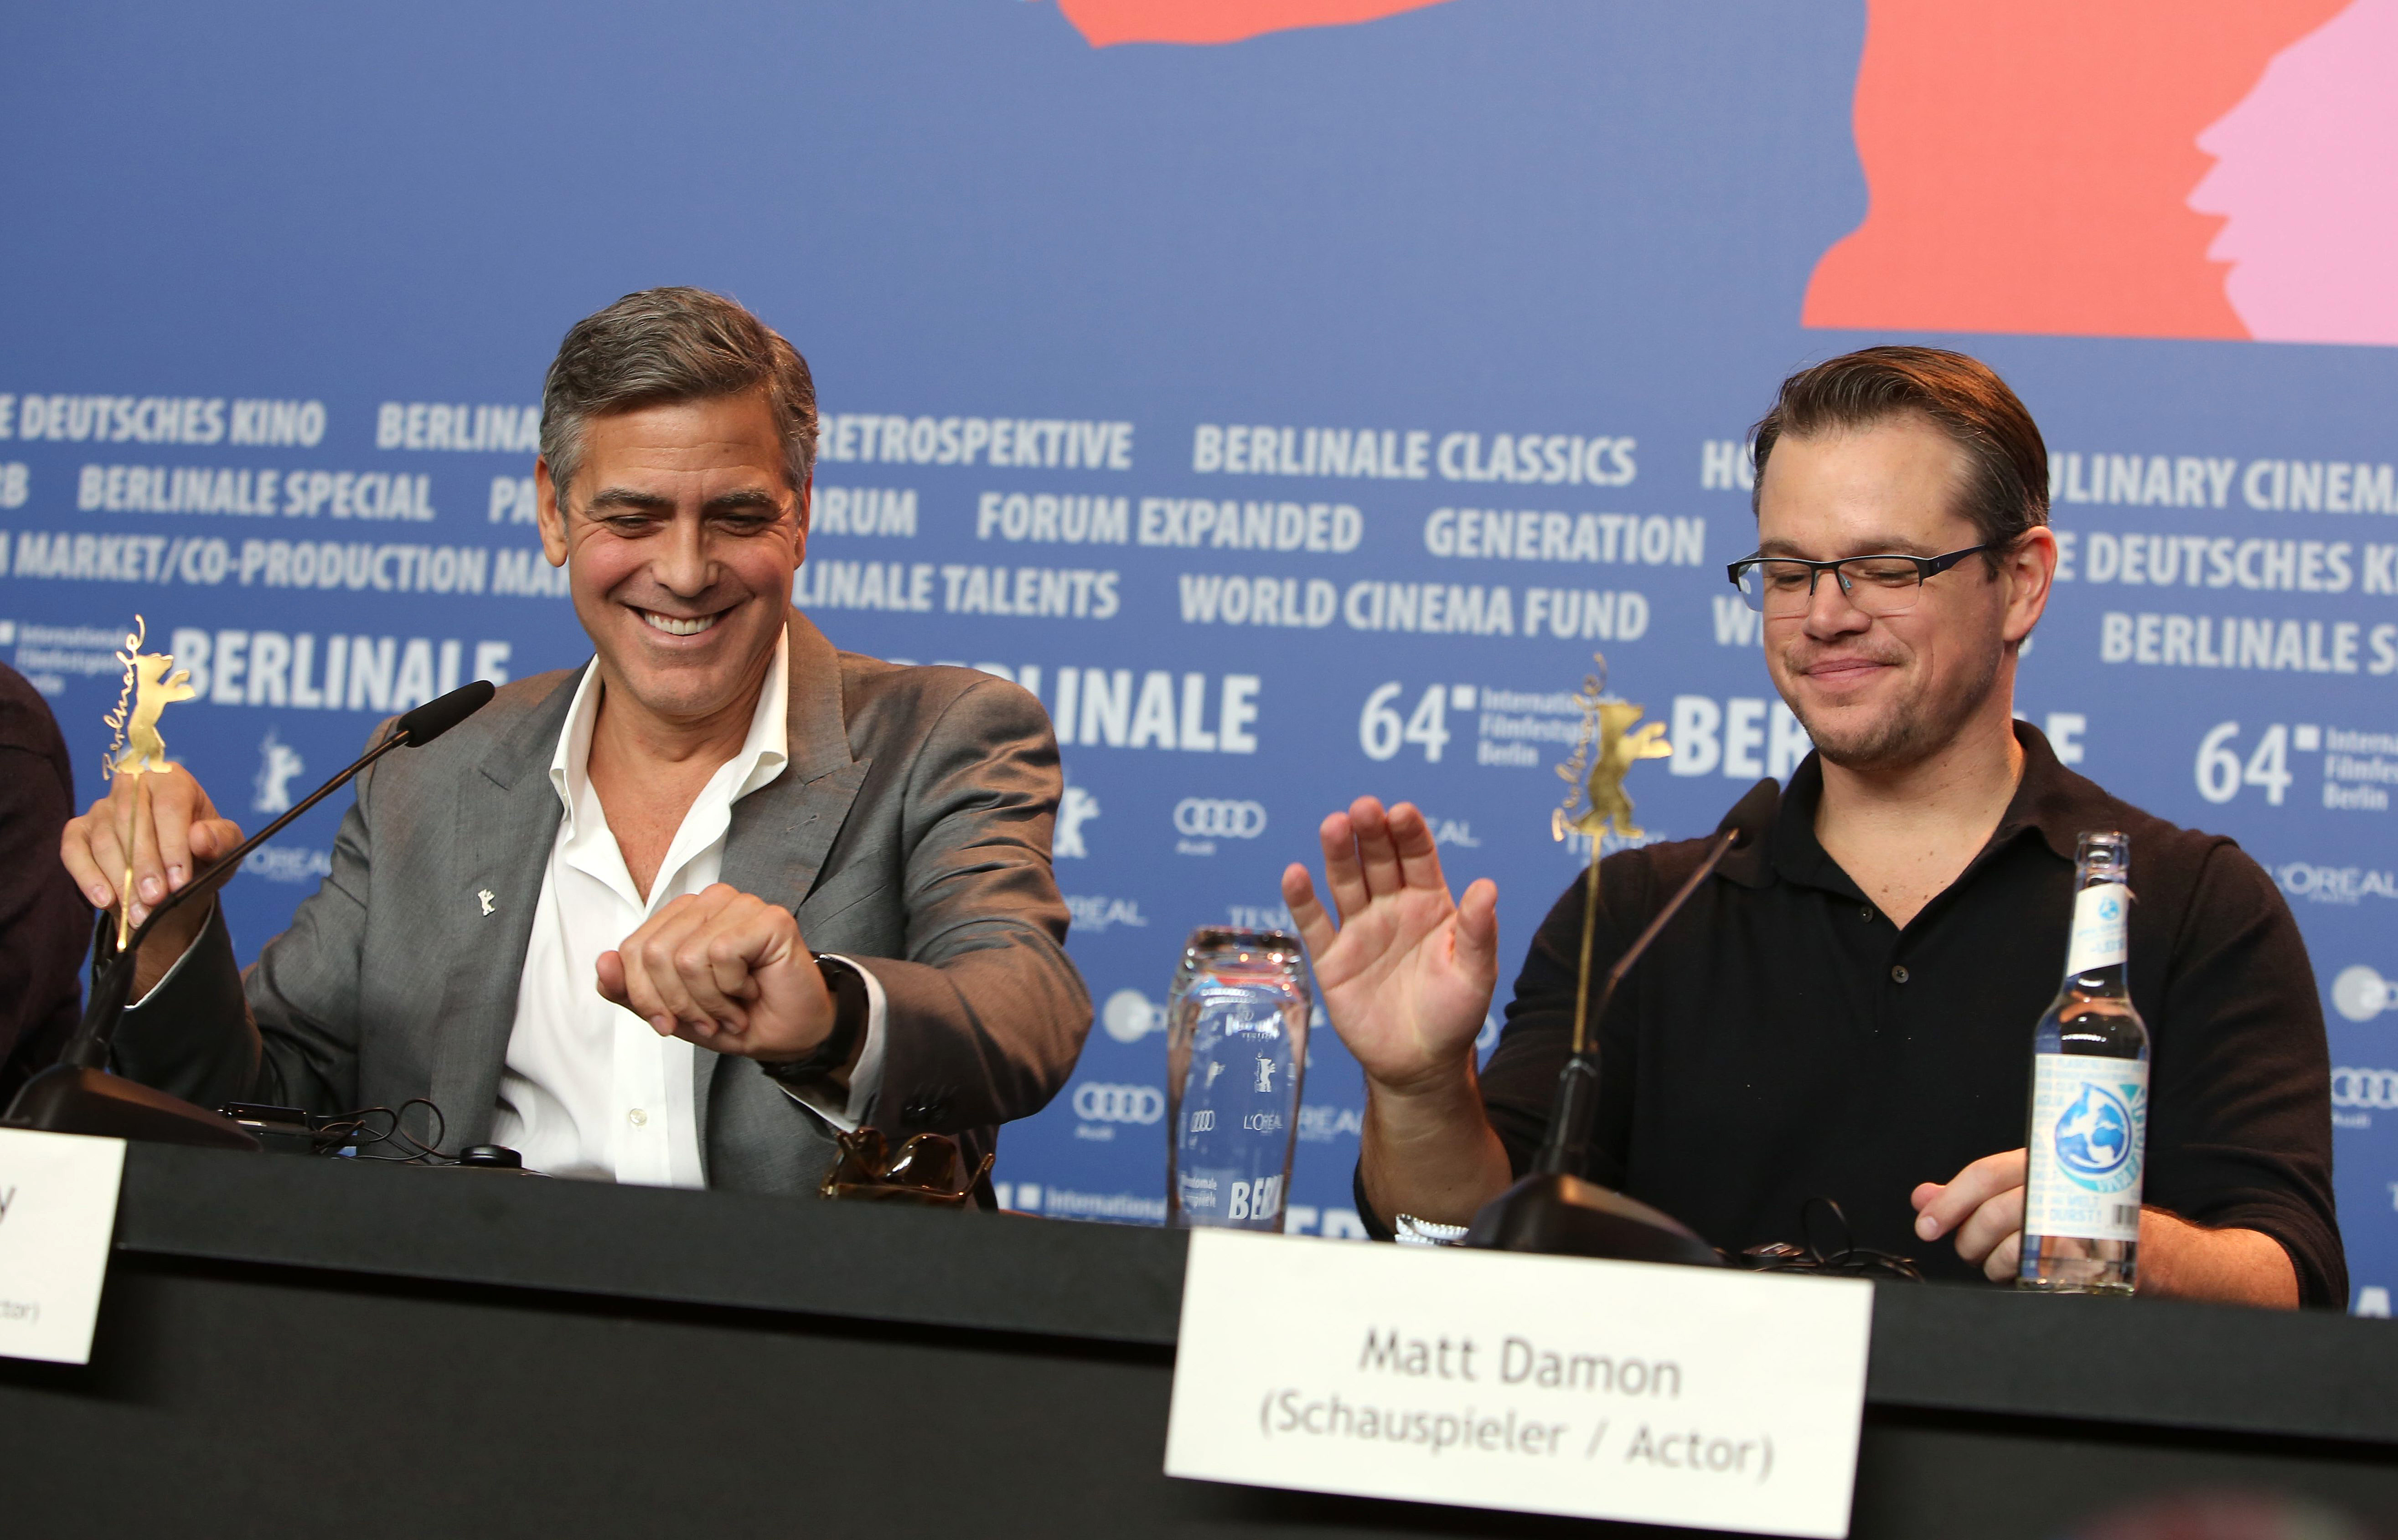 64th Berlin International Film Festival (Berlinale) - 'The Monuments Men' press conference  Featuring: George Clooney, Matt Damon Where: Berlin, Germany When: 08 Feb 2014 Credit: WENN.com  **Not available for publication in Germany**